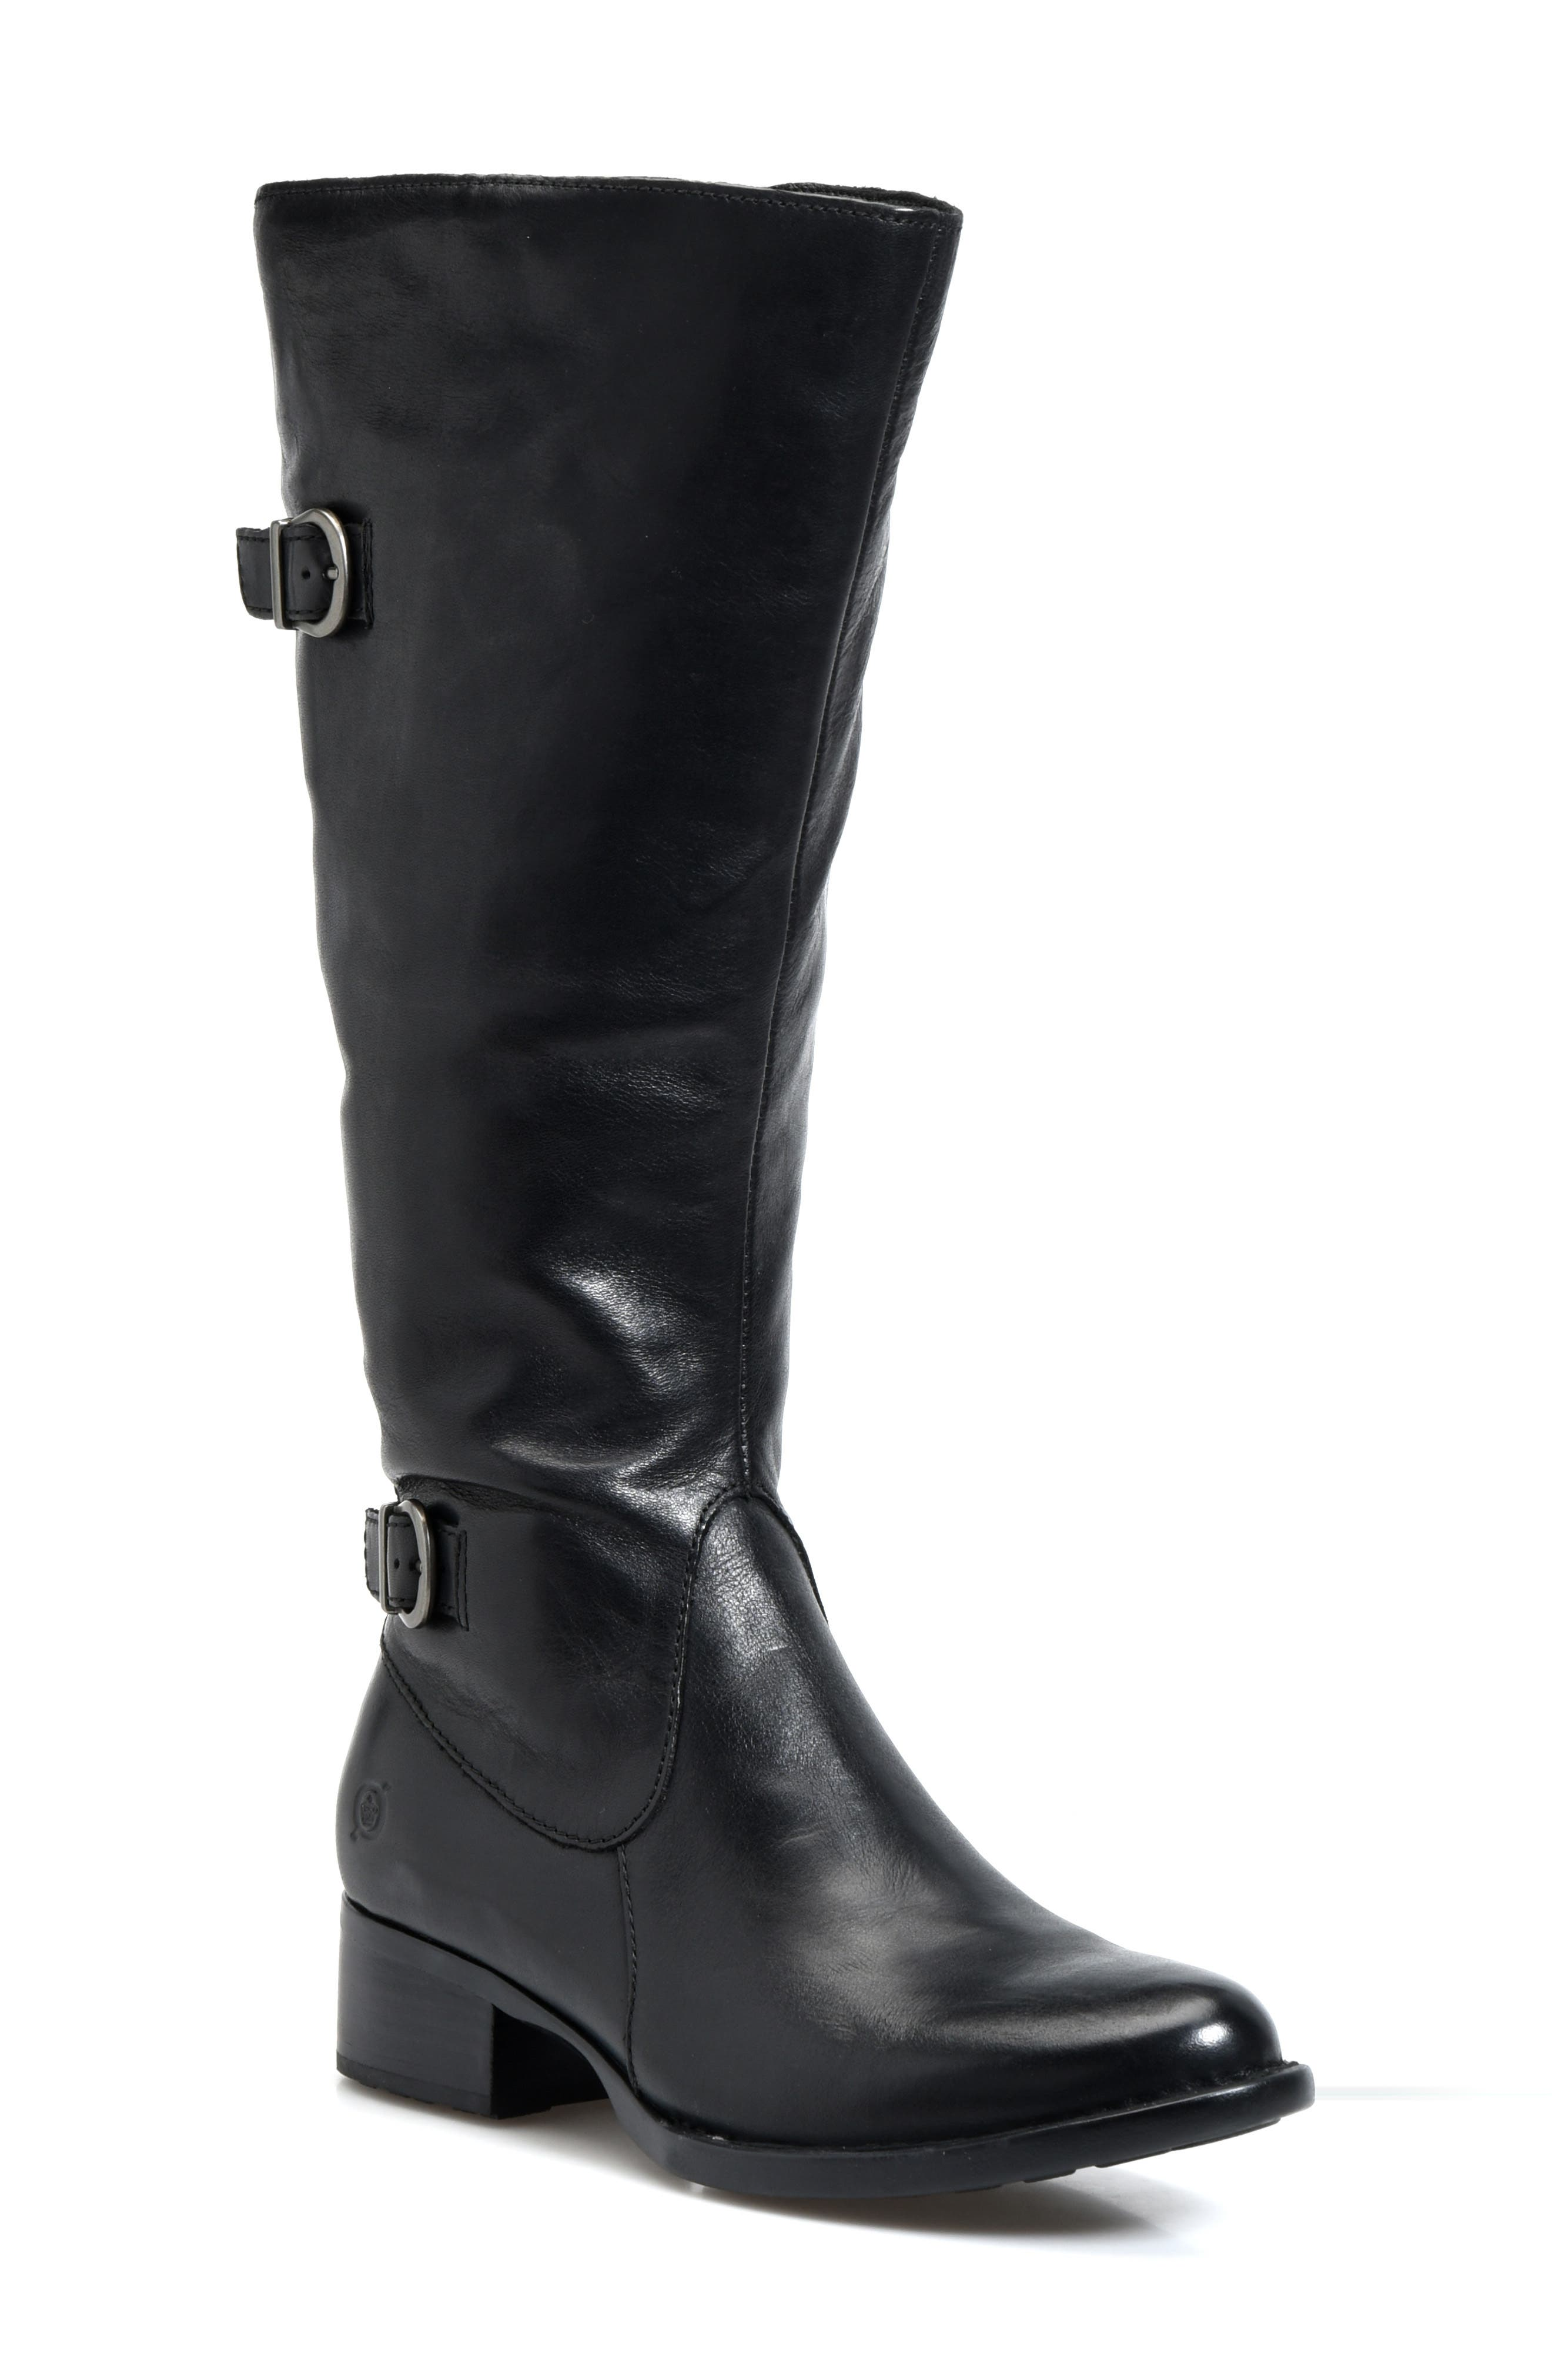 BØRN Gibb Knee High Riding Boot, Main, color, BLACK LEATHER